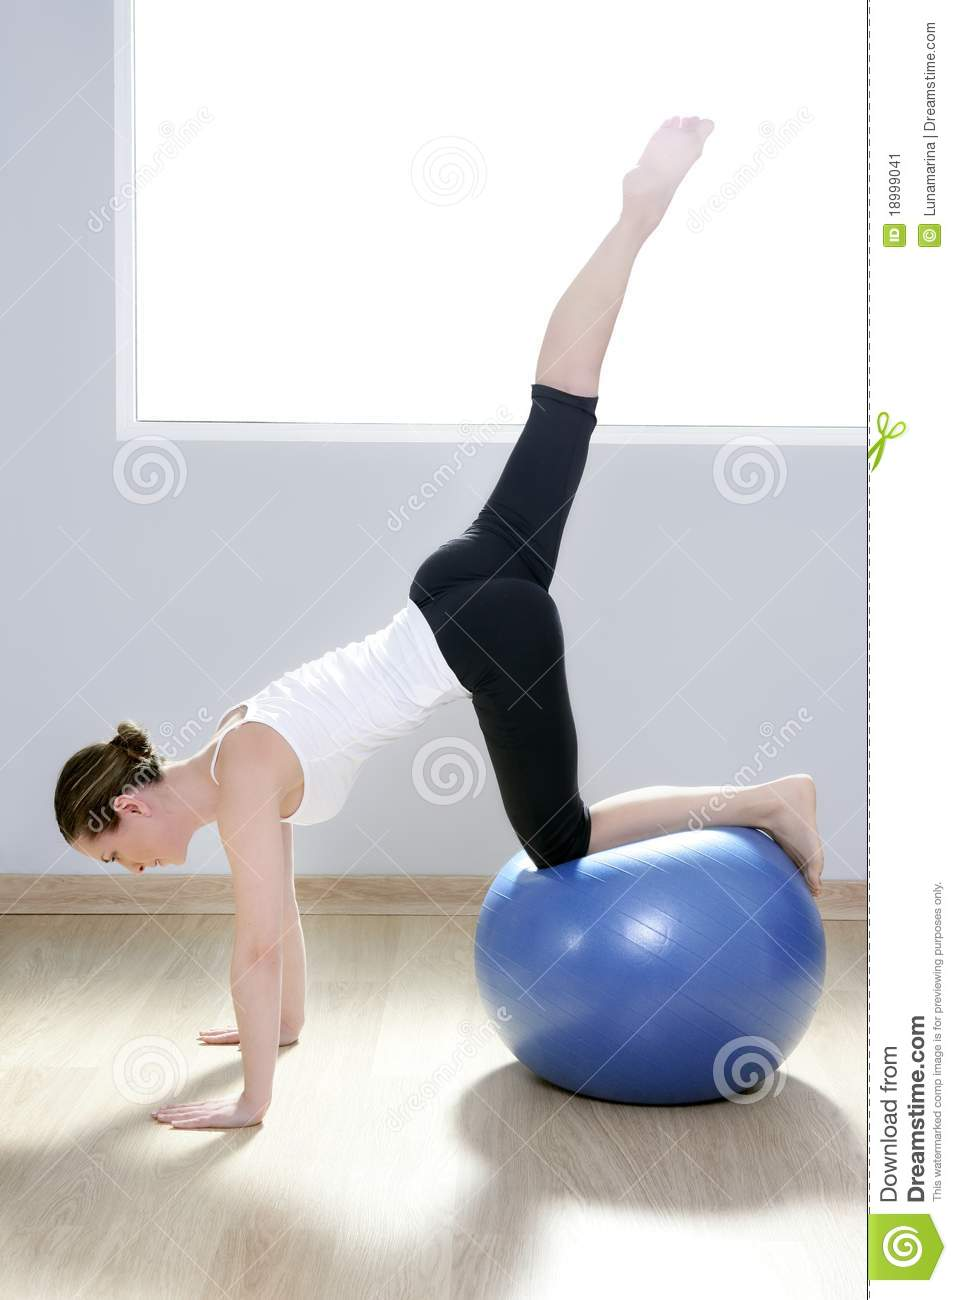 Pilates woman stability ball gym fitness yoga royalty free for Gimnasio pilates